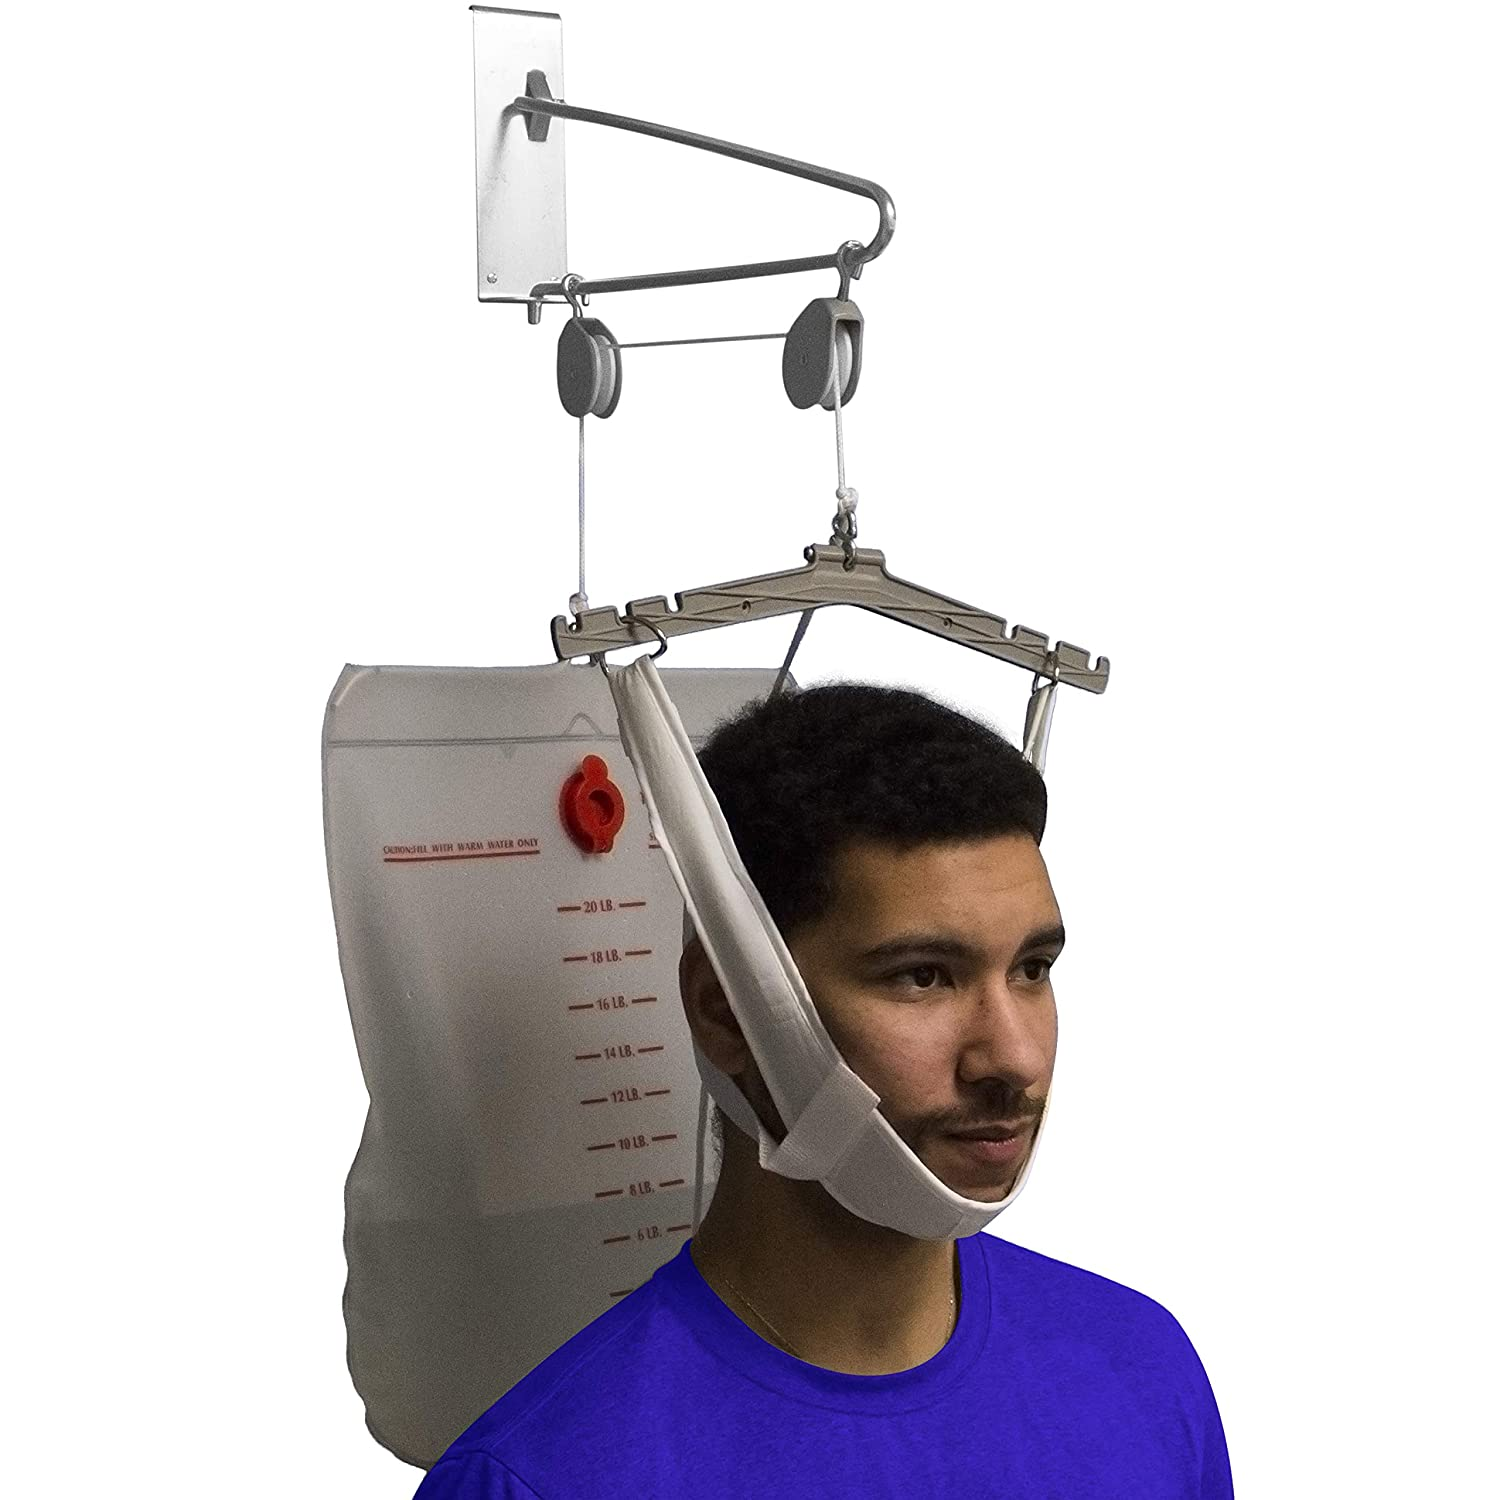 second best cervical traction device